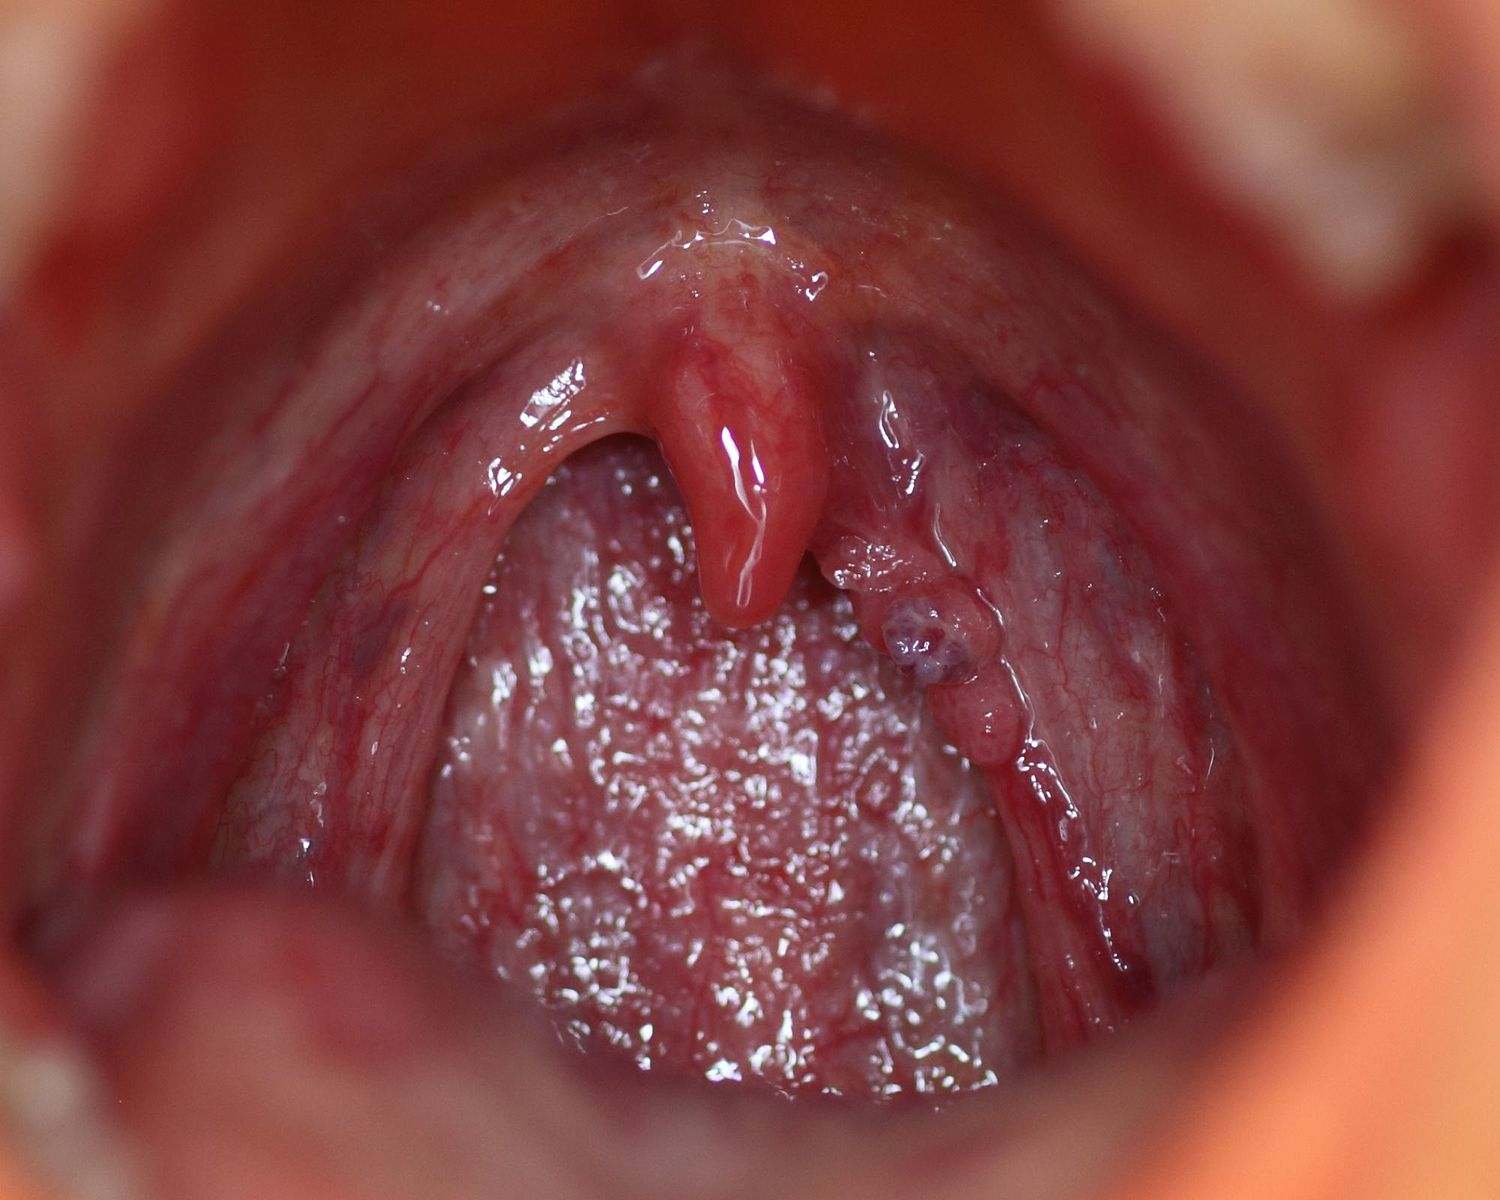 hpv virus cause bleeding intraductal papilloma with florid ductal hyperplasia